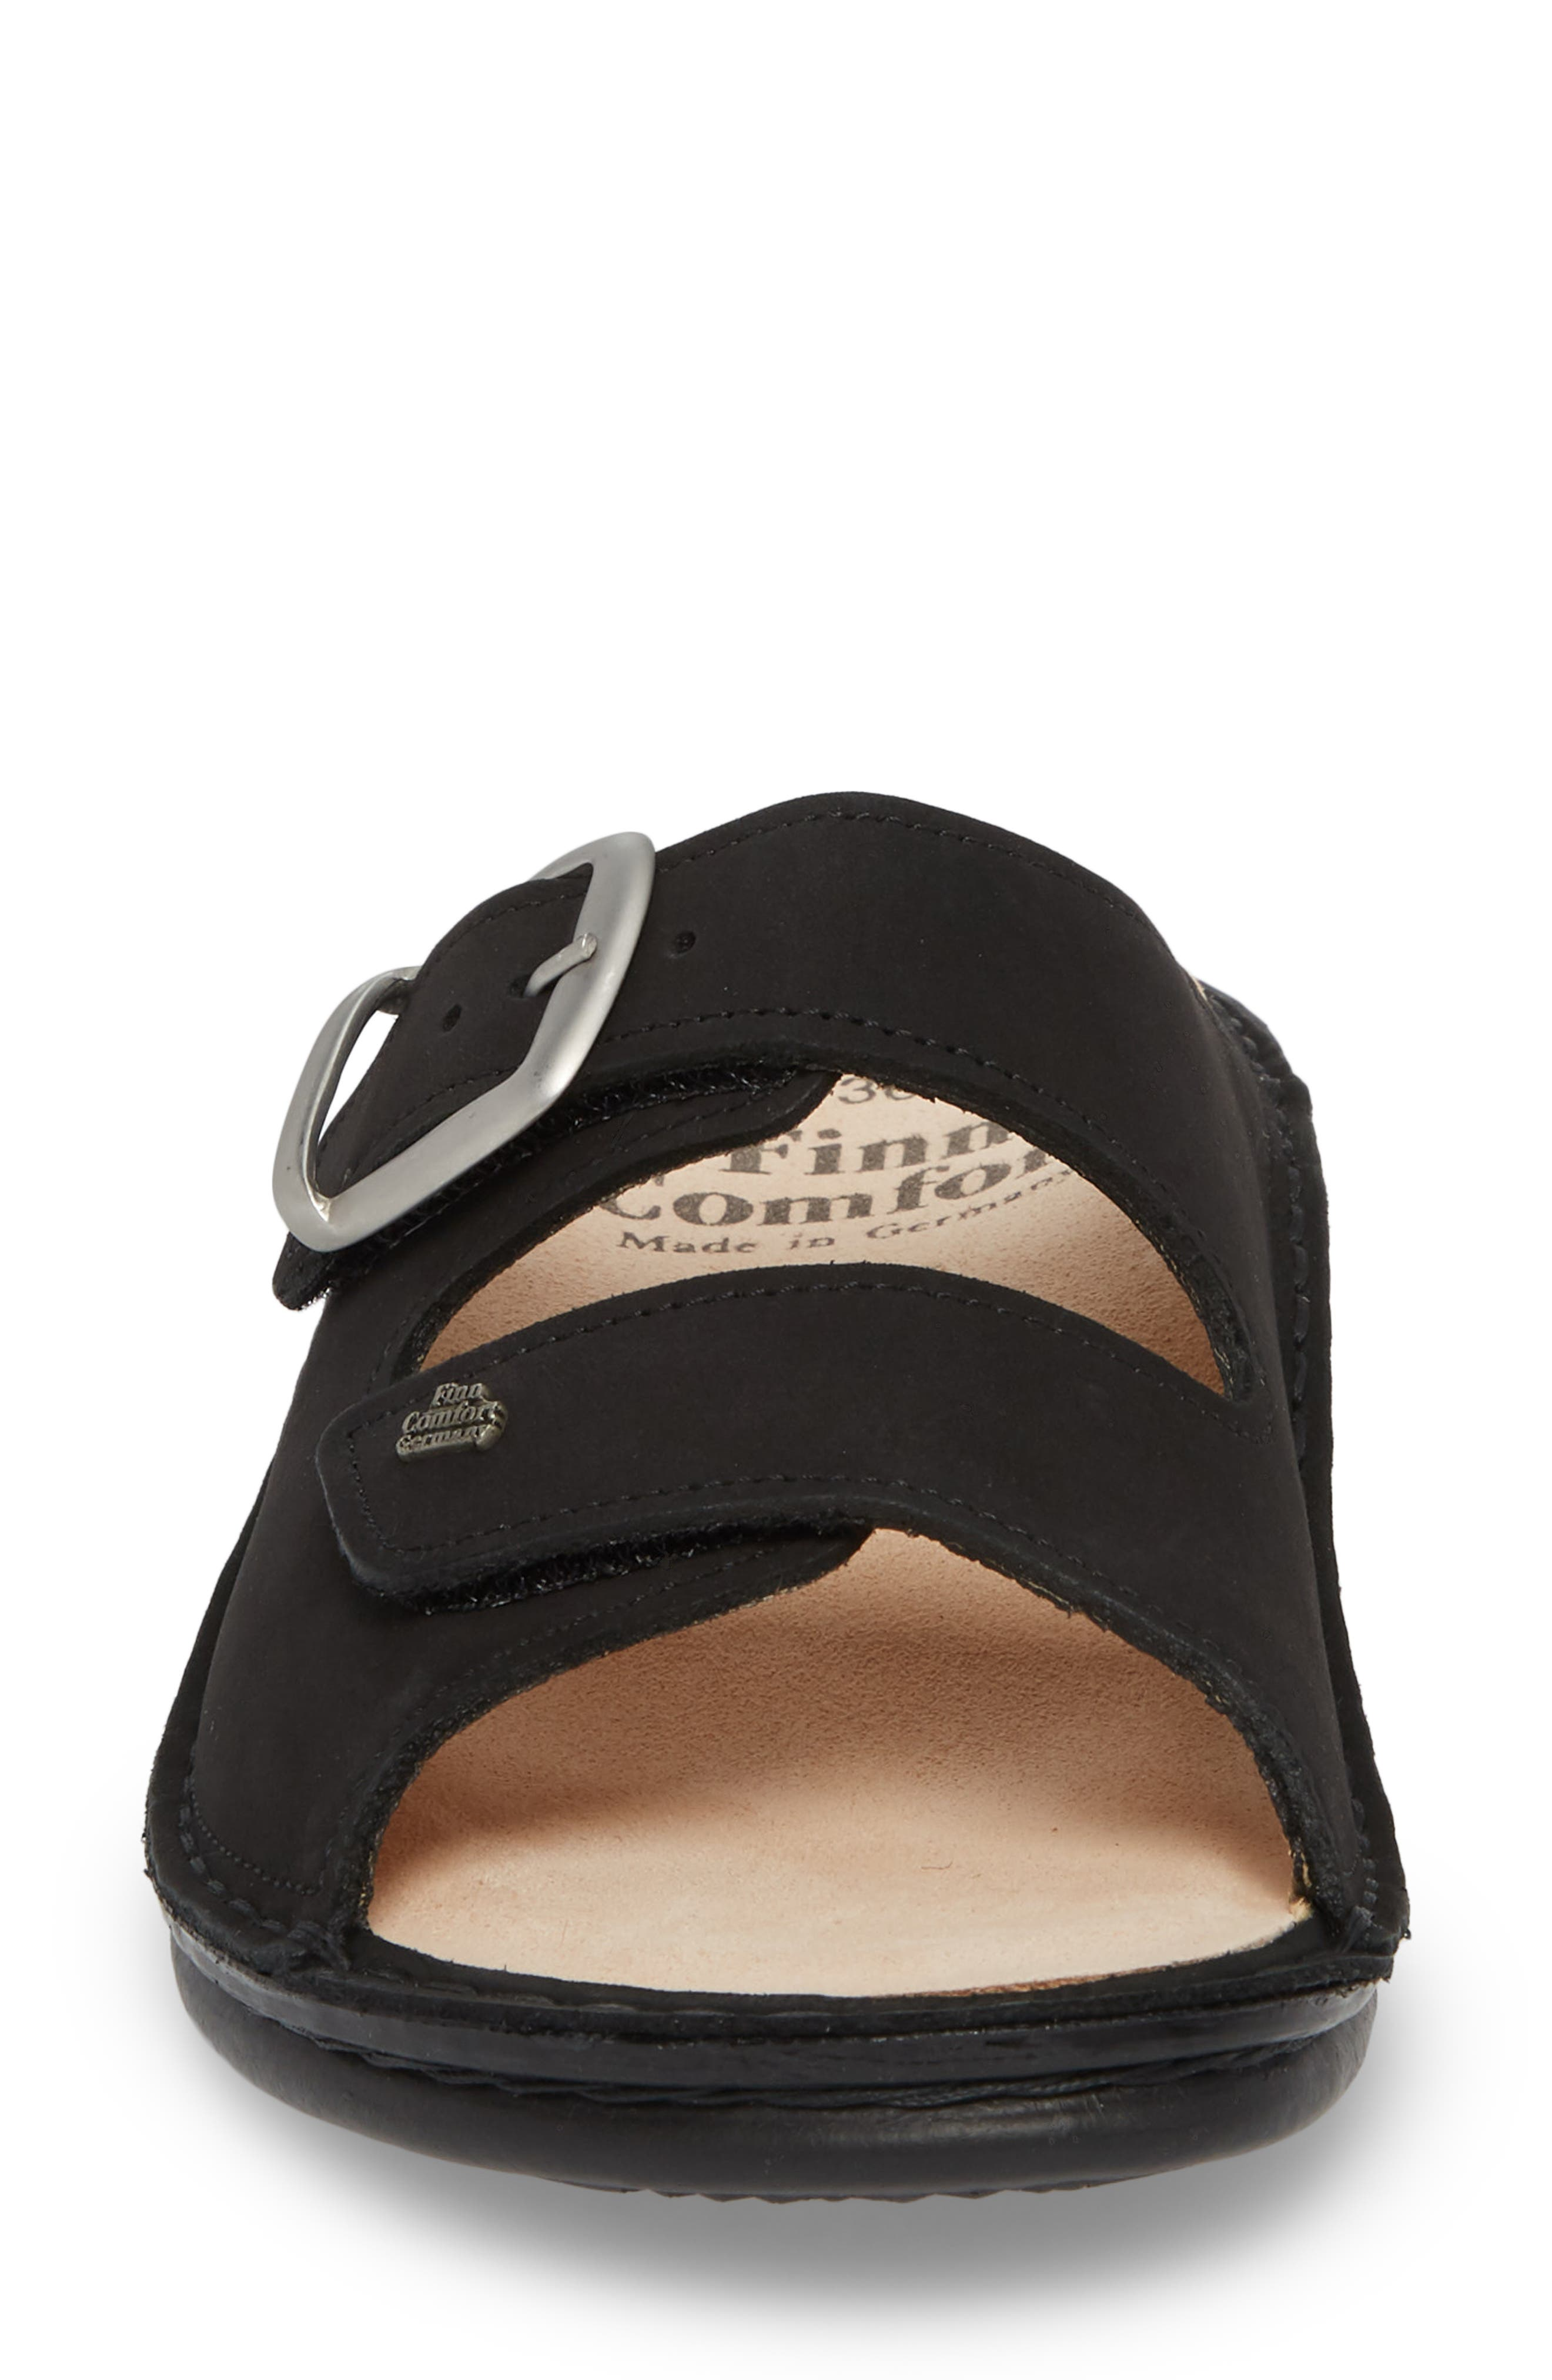 Harper Slide Sandal,                             Alternate thumbnail 4, color,                             BLACK LEATHER